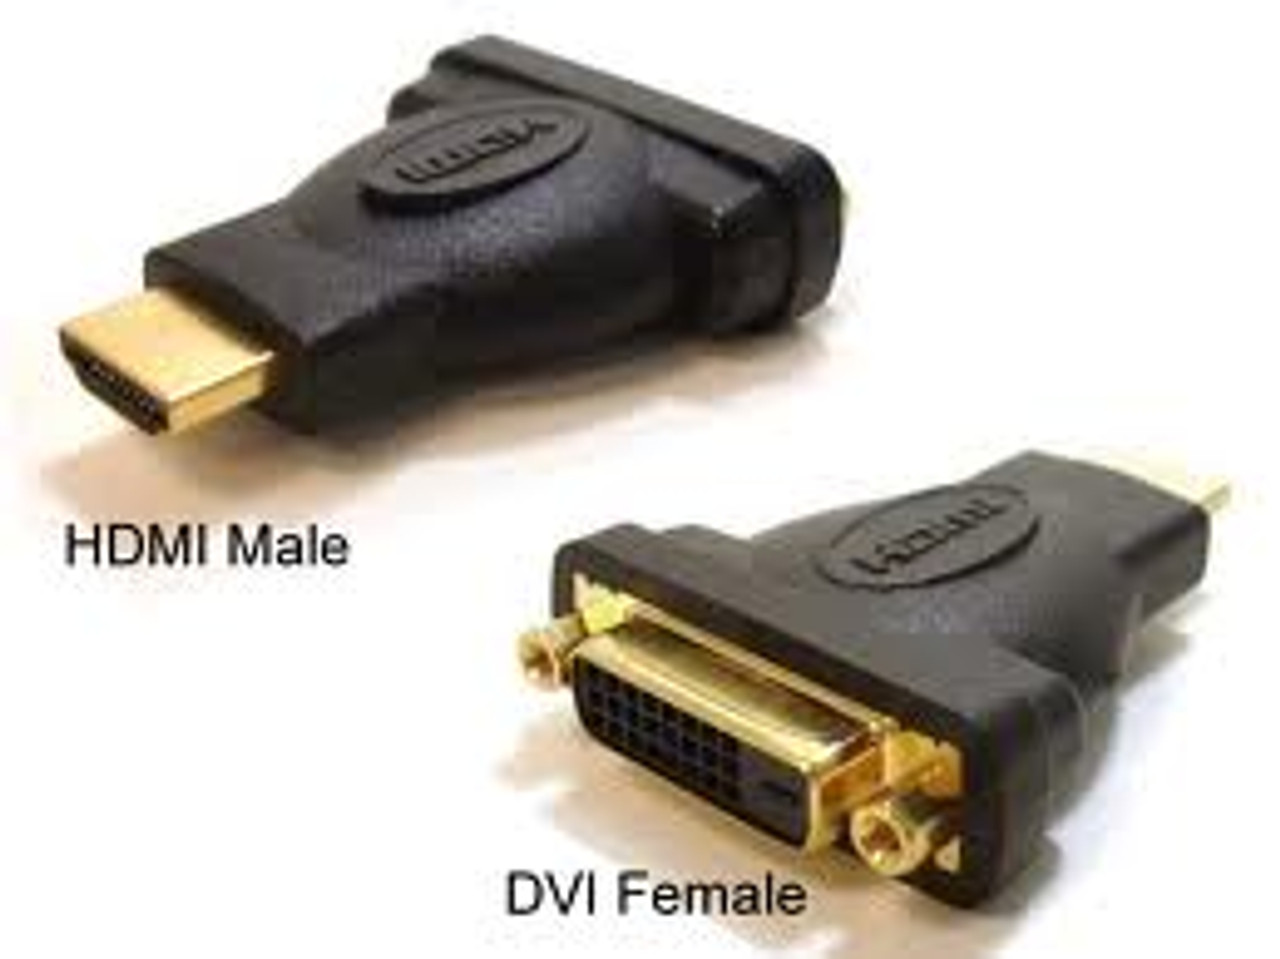 Product image for Adapter DVI Female to HDMI Male (T024N) | CX Computer Superstore